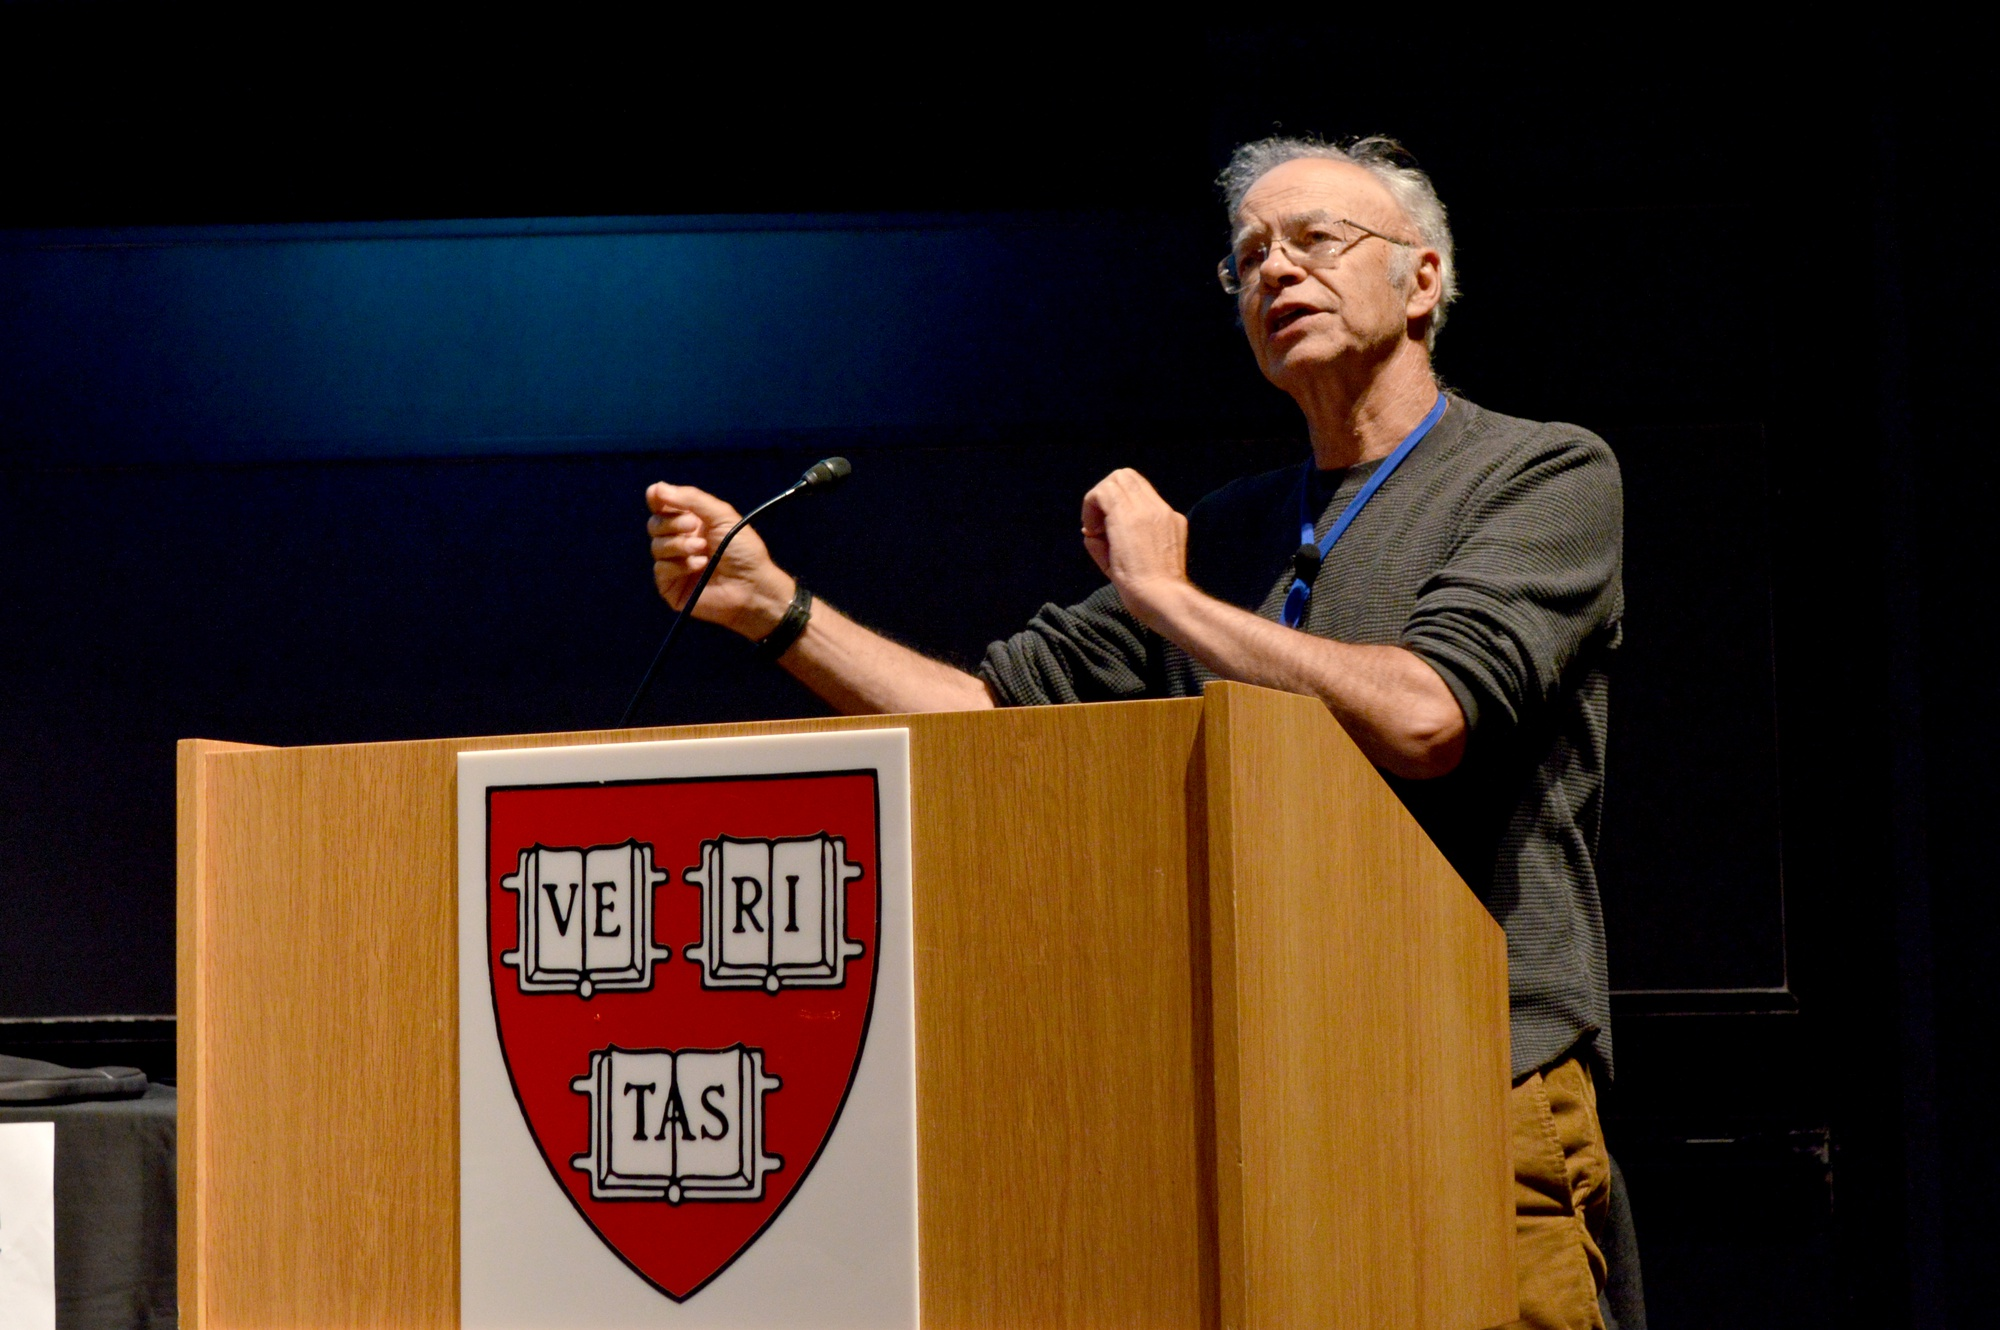 Philosopher Peter A. D. Singer speaks to a packed audience about effective altruism on Sunday night.  The event was part of Harvard Effective Altruism Week.